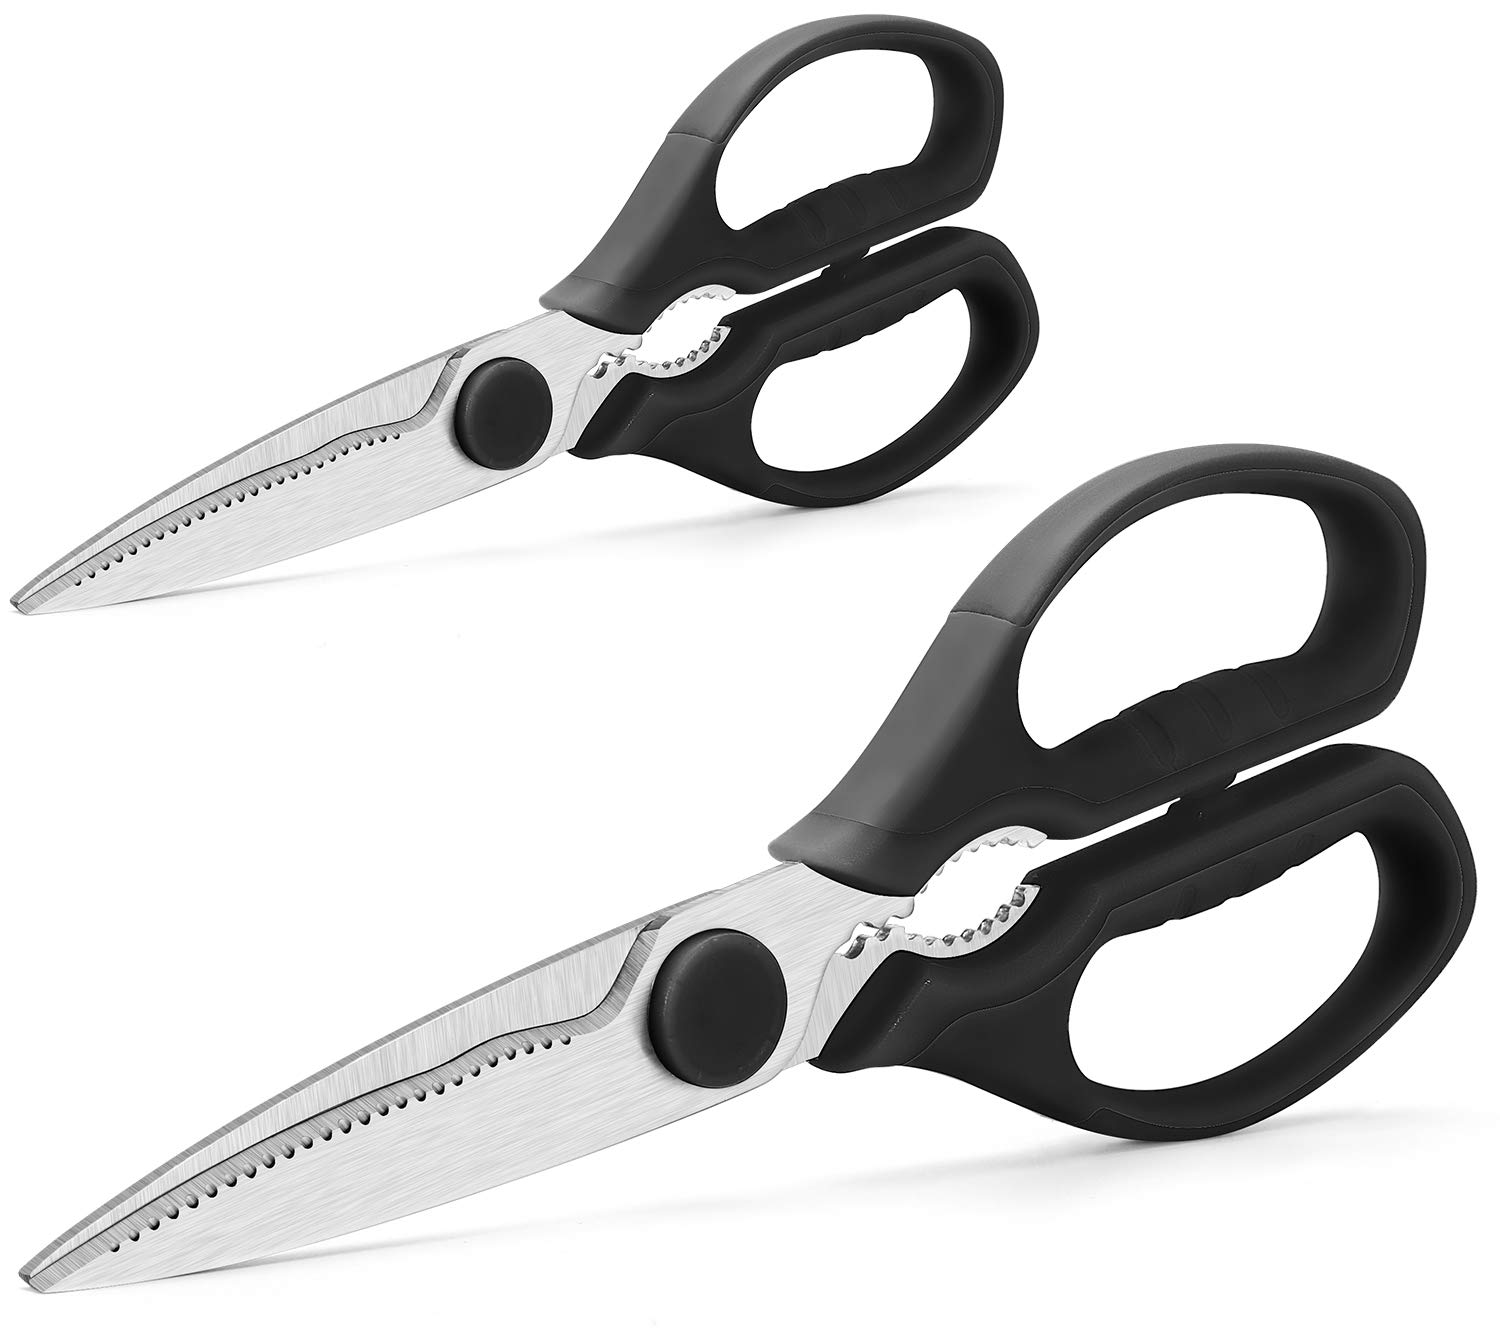 Multifunction Kitchen Scissors 2-Piece Set WELLSTAR, Heavy Duty Food Shears for Chicken Meat Vegetable Fish Herb Poultry Stainless Steel Cooking Scissors with Comfortable Handle Scissors Set (Black)